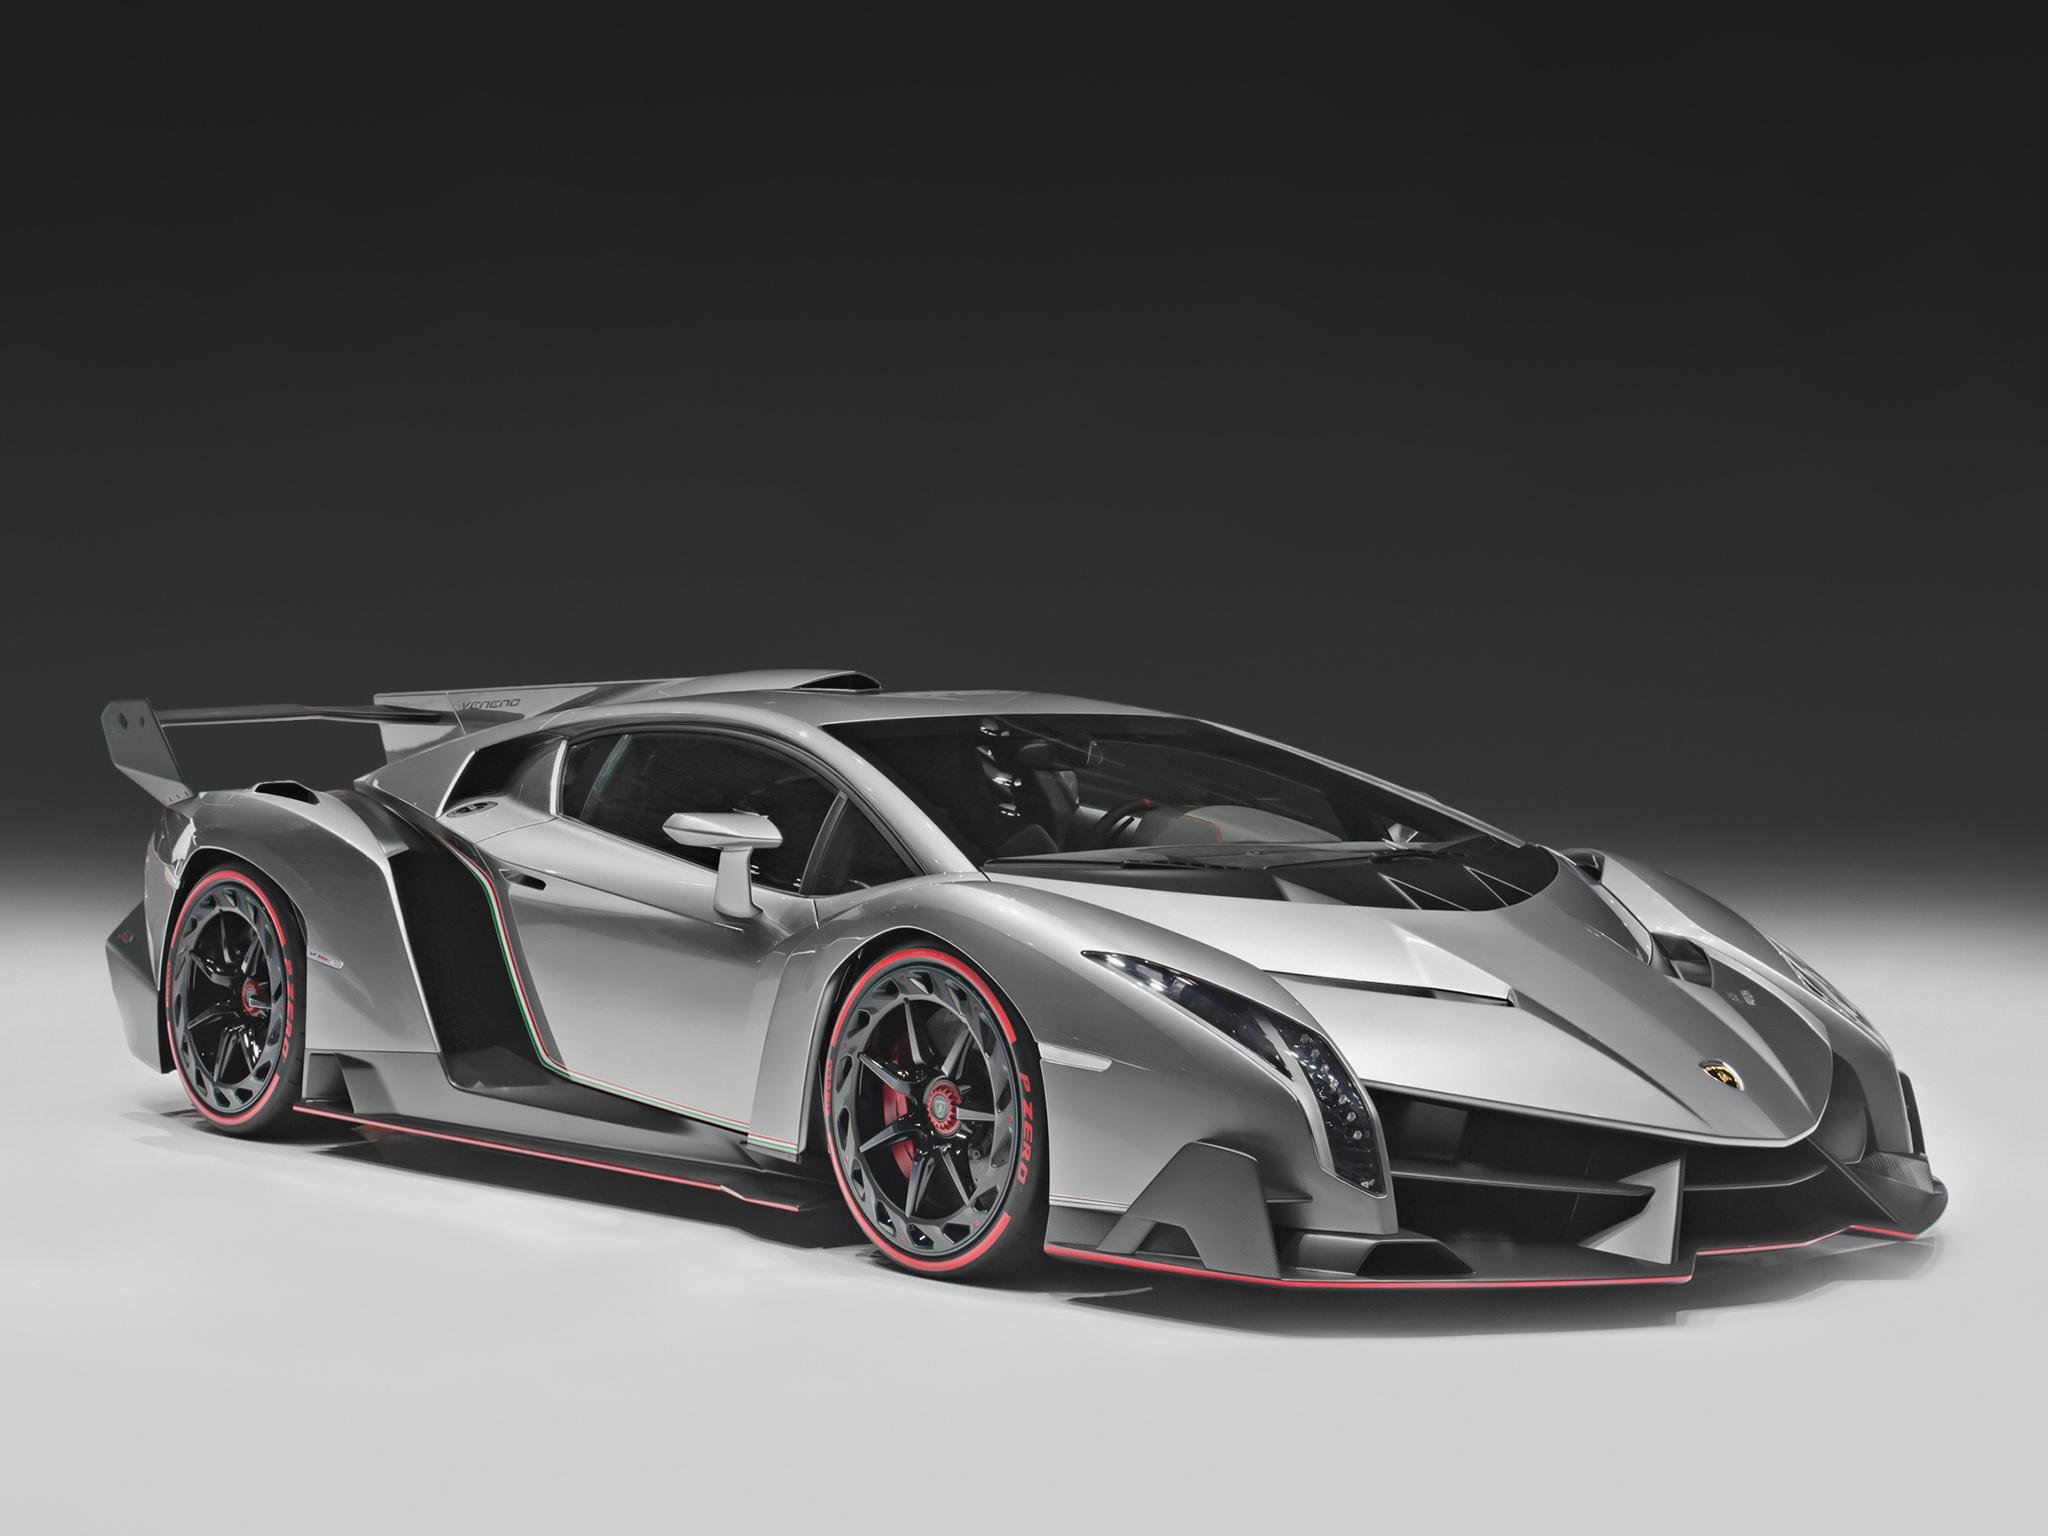 Lamborghini Veneno   Fastest Car In The World